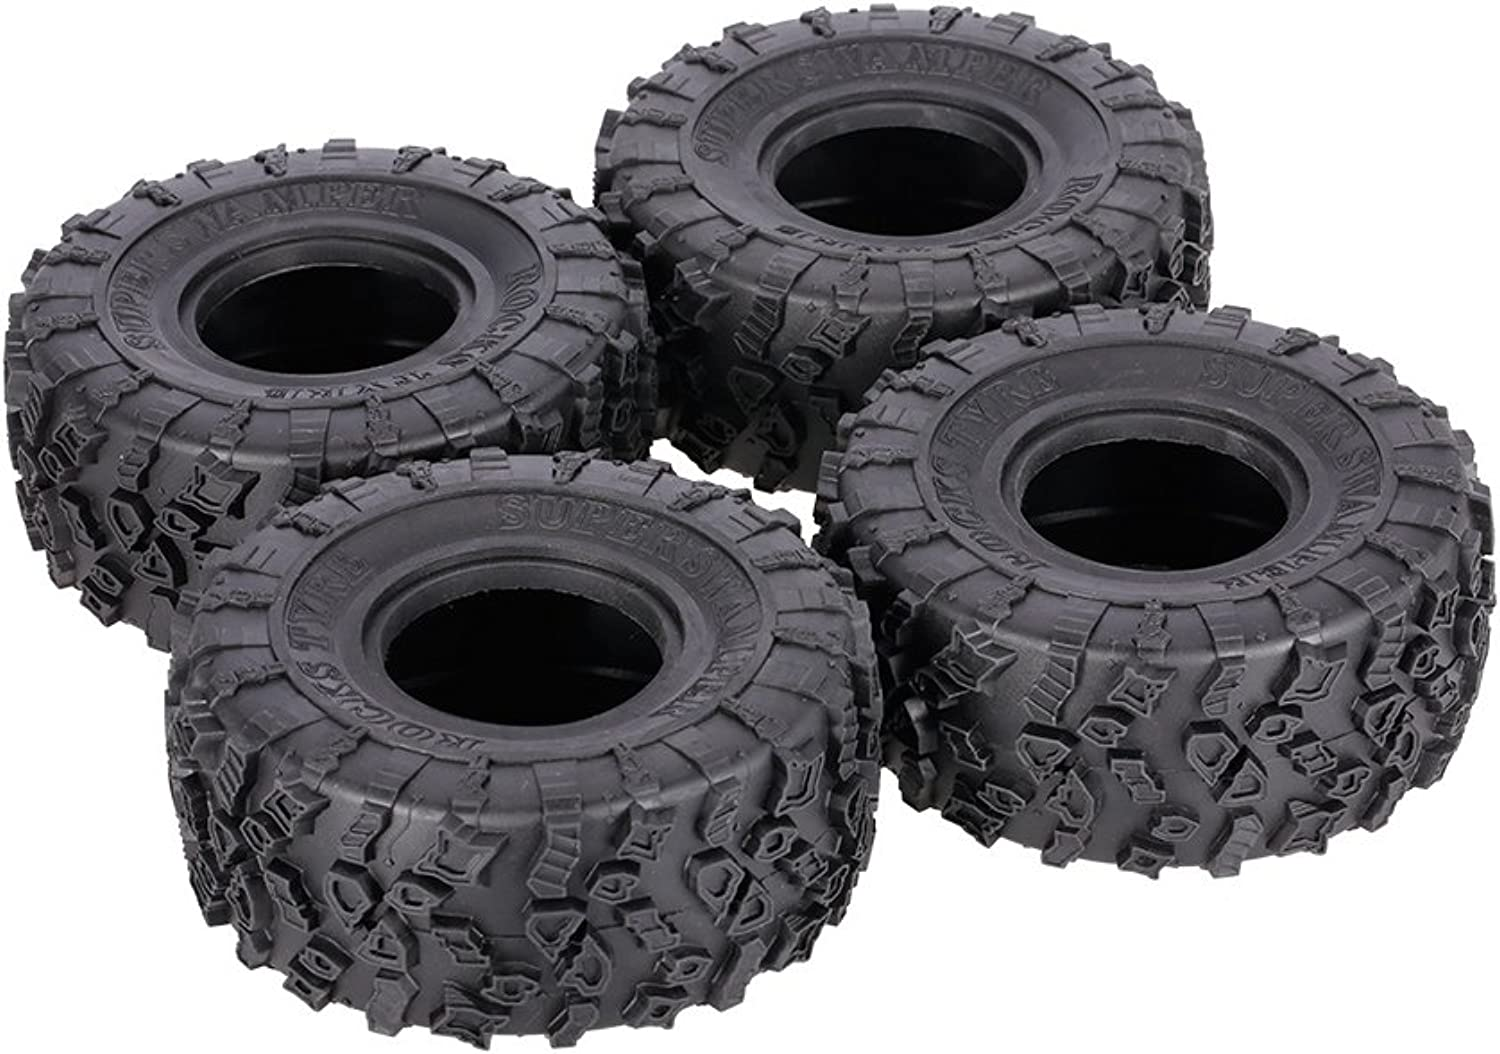 LaDicha 4Pcs AUSTAR AX4021 2.2 Inch 1 10 Rock Crawler Tire with Metal Hub for Traxxas SCX10 AXIAL RC Car